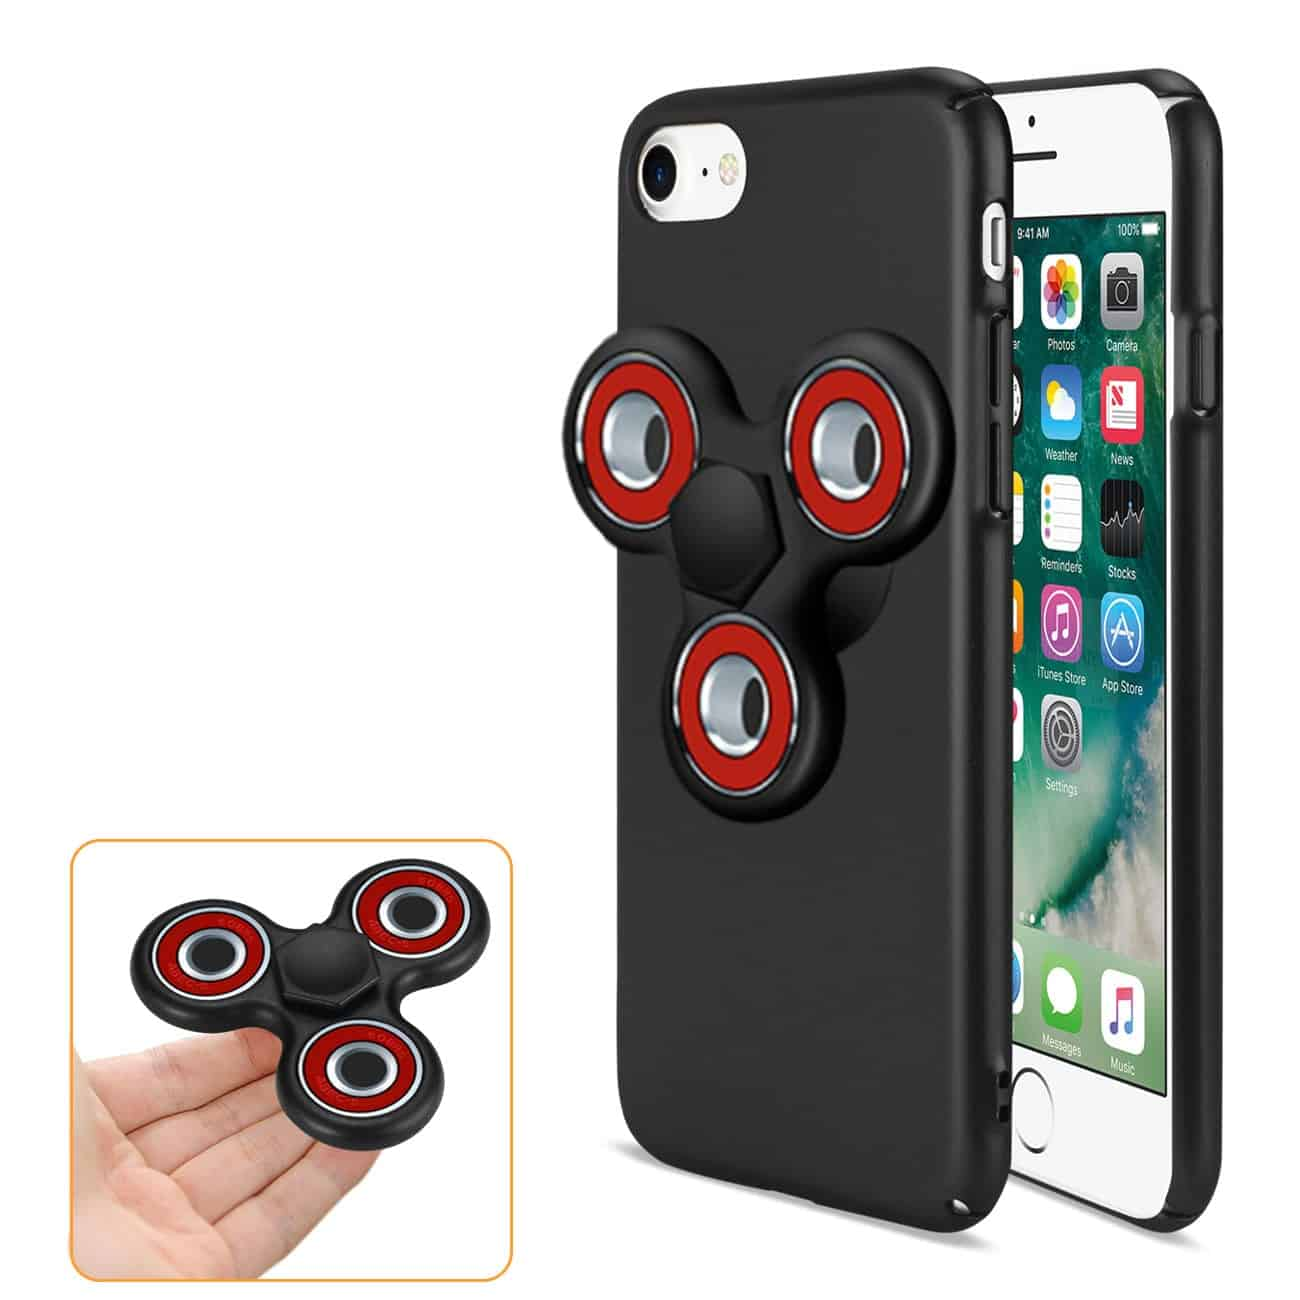 IPHONE 7/ 6/ 6S CASE WITH LED FIDGET SPINNER CLIP ON IN BLACK